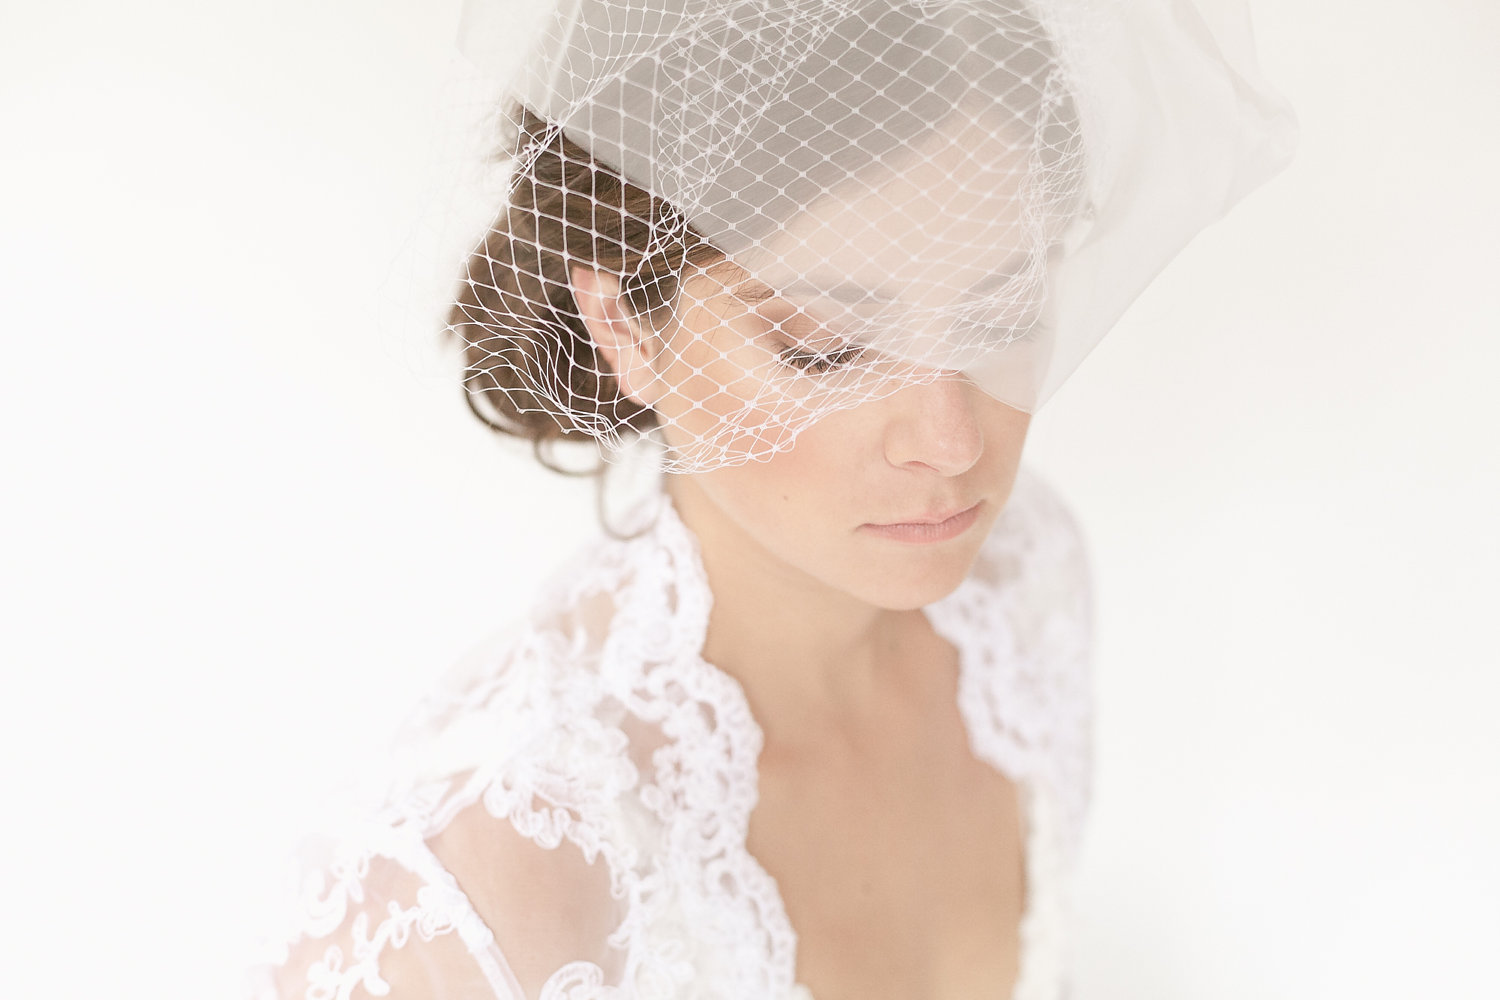 Tulle-wedding-accessories-for-romantic-brides-from-etsy-tulle-french-net-veil.original